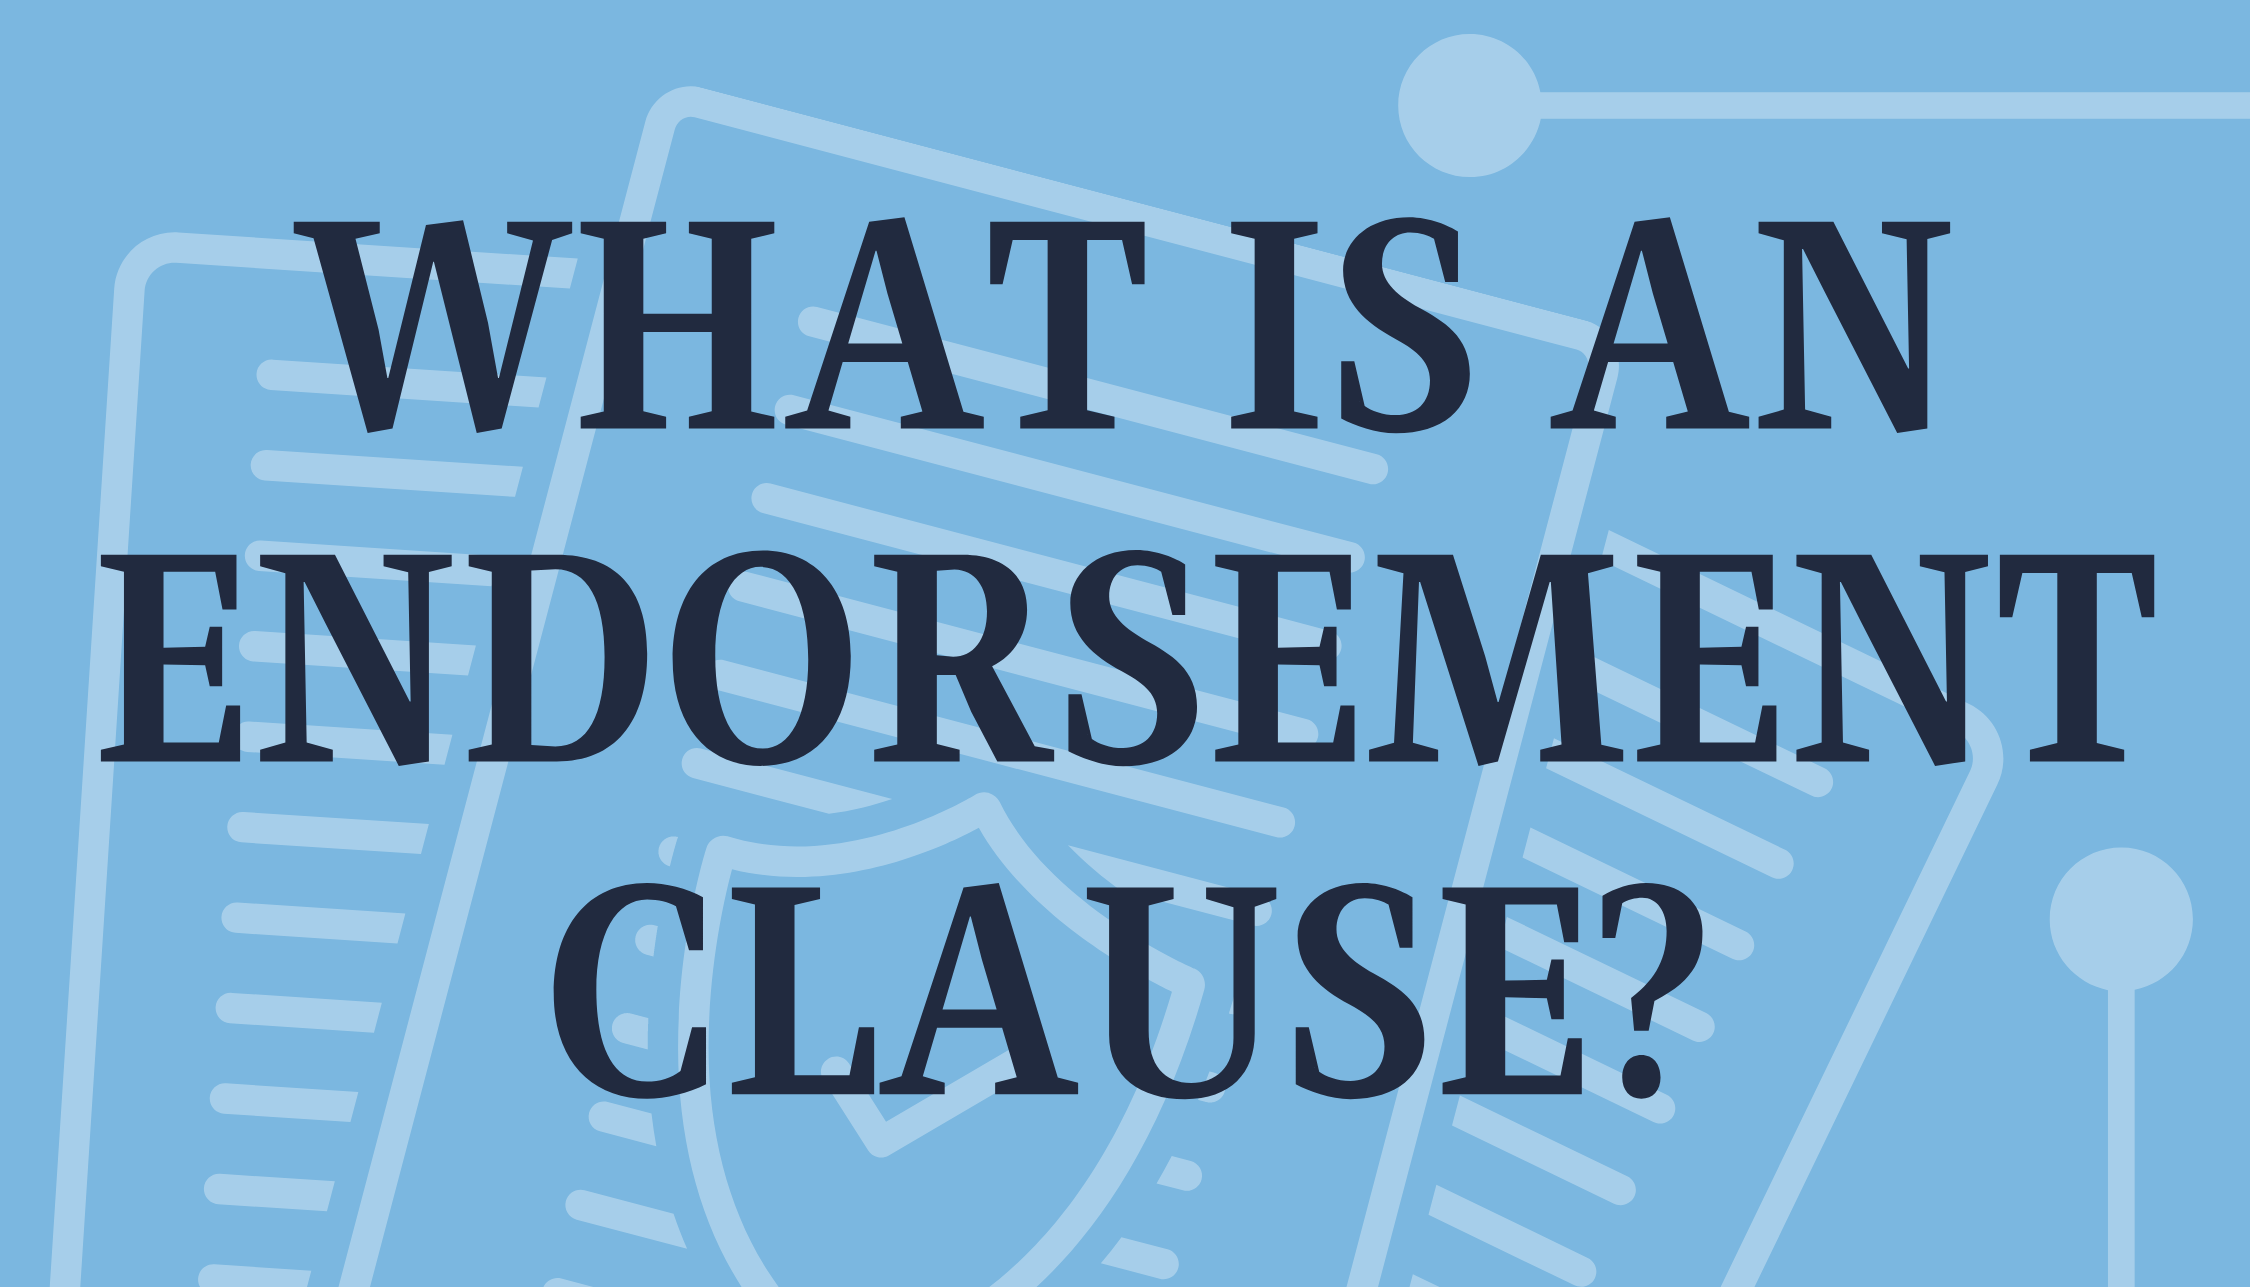 What is an Endorsement Clause?